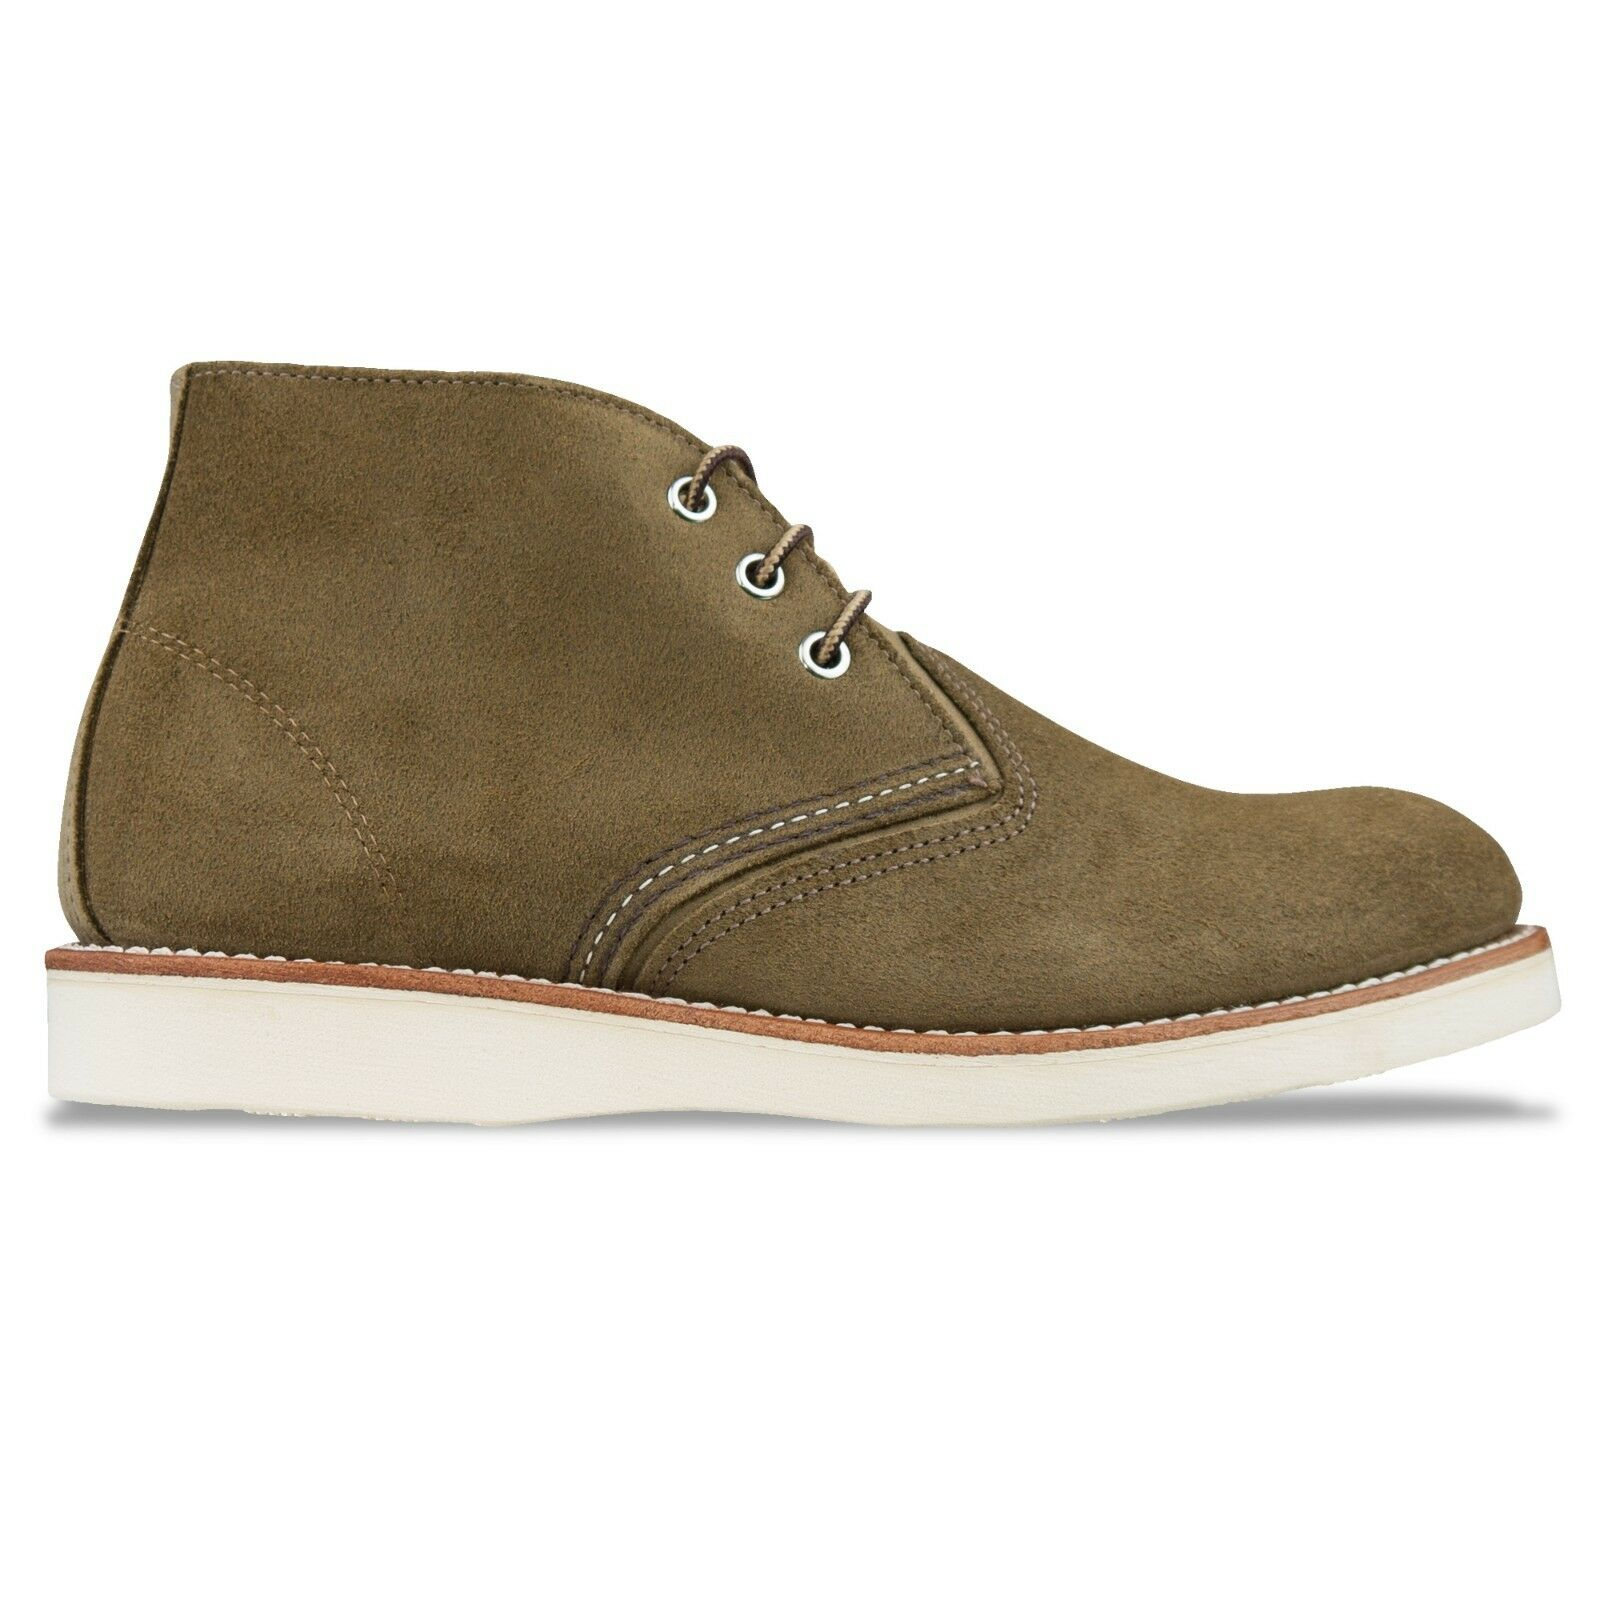 Bottines RED WING-NEW RED WING Chukka Chukka Chukka Bottes-Tan/Marron/Olive MOHAVE LTHR-EntièreHommes t NEUF dans sa boîte c46c57